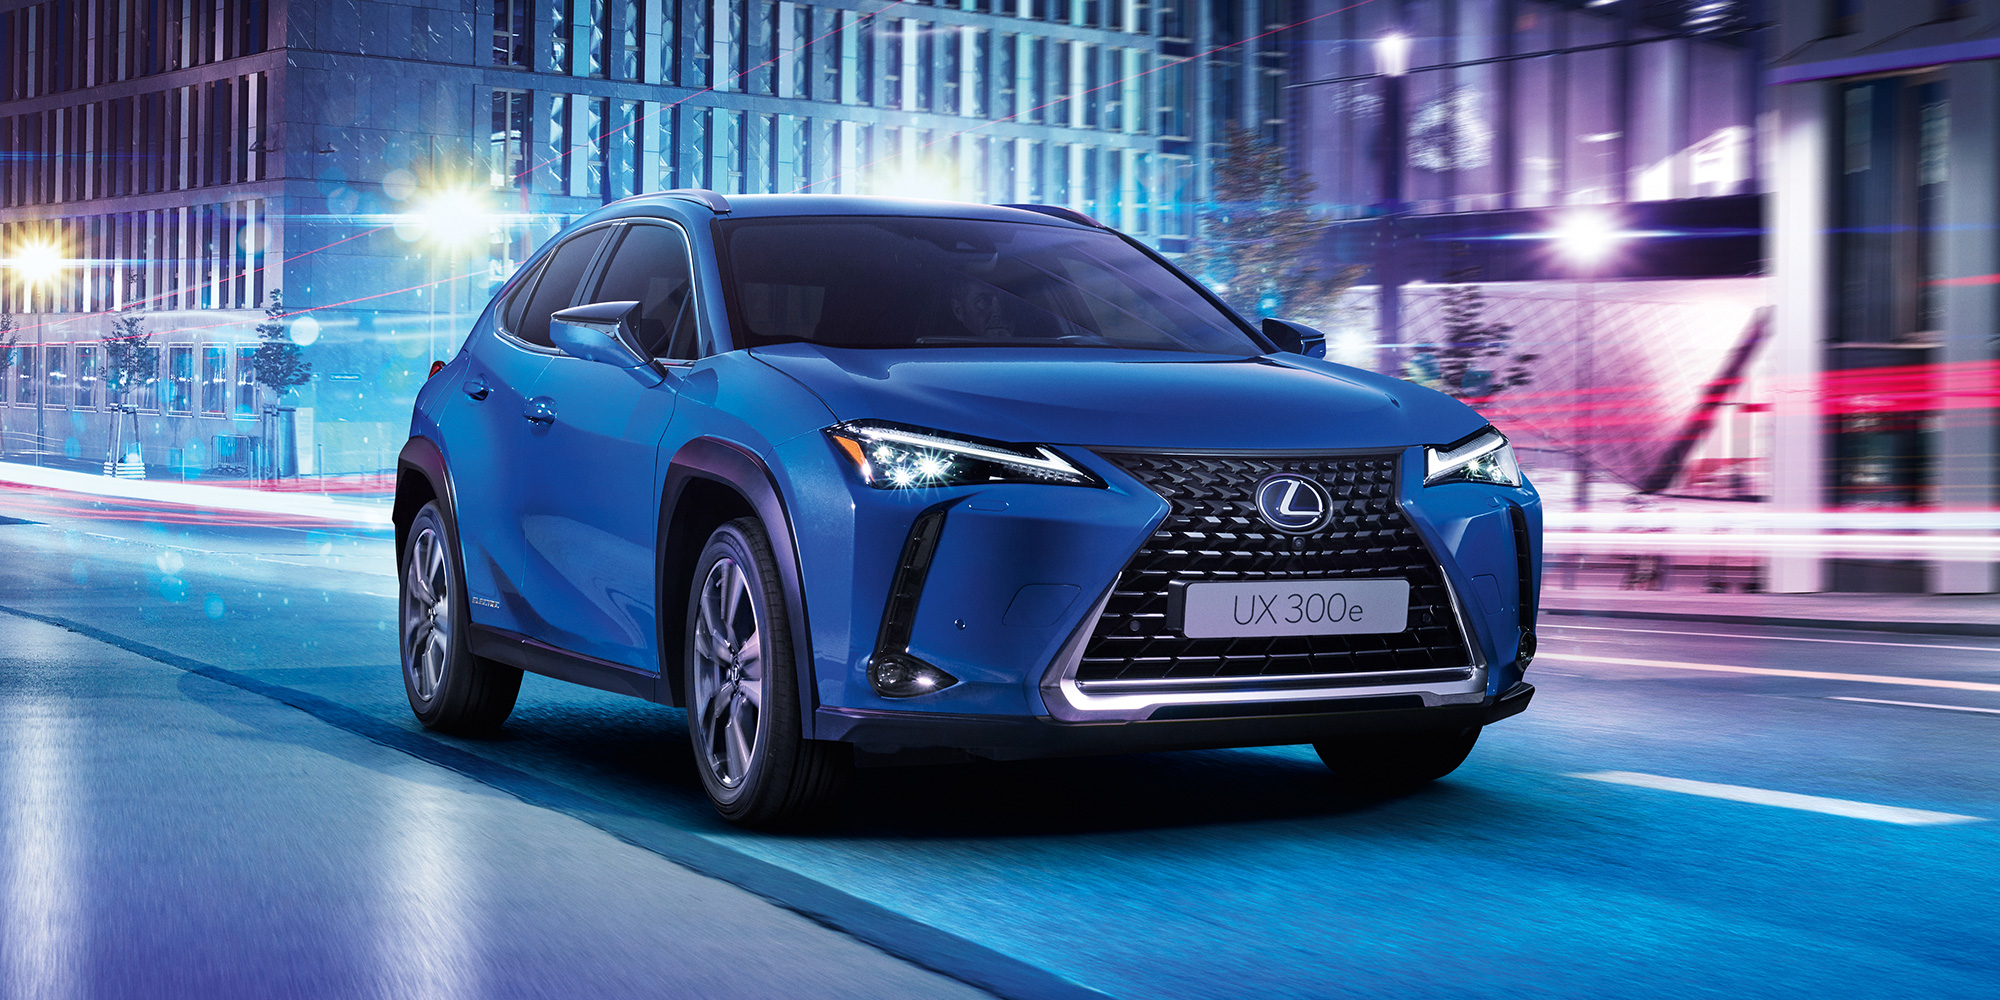 Lexus Launches Electric Suv For Asia And Europe Showing That Toyota Can Quickly Shift To Evs Electrek